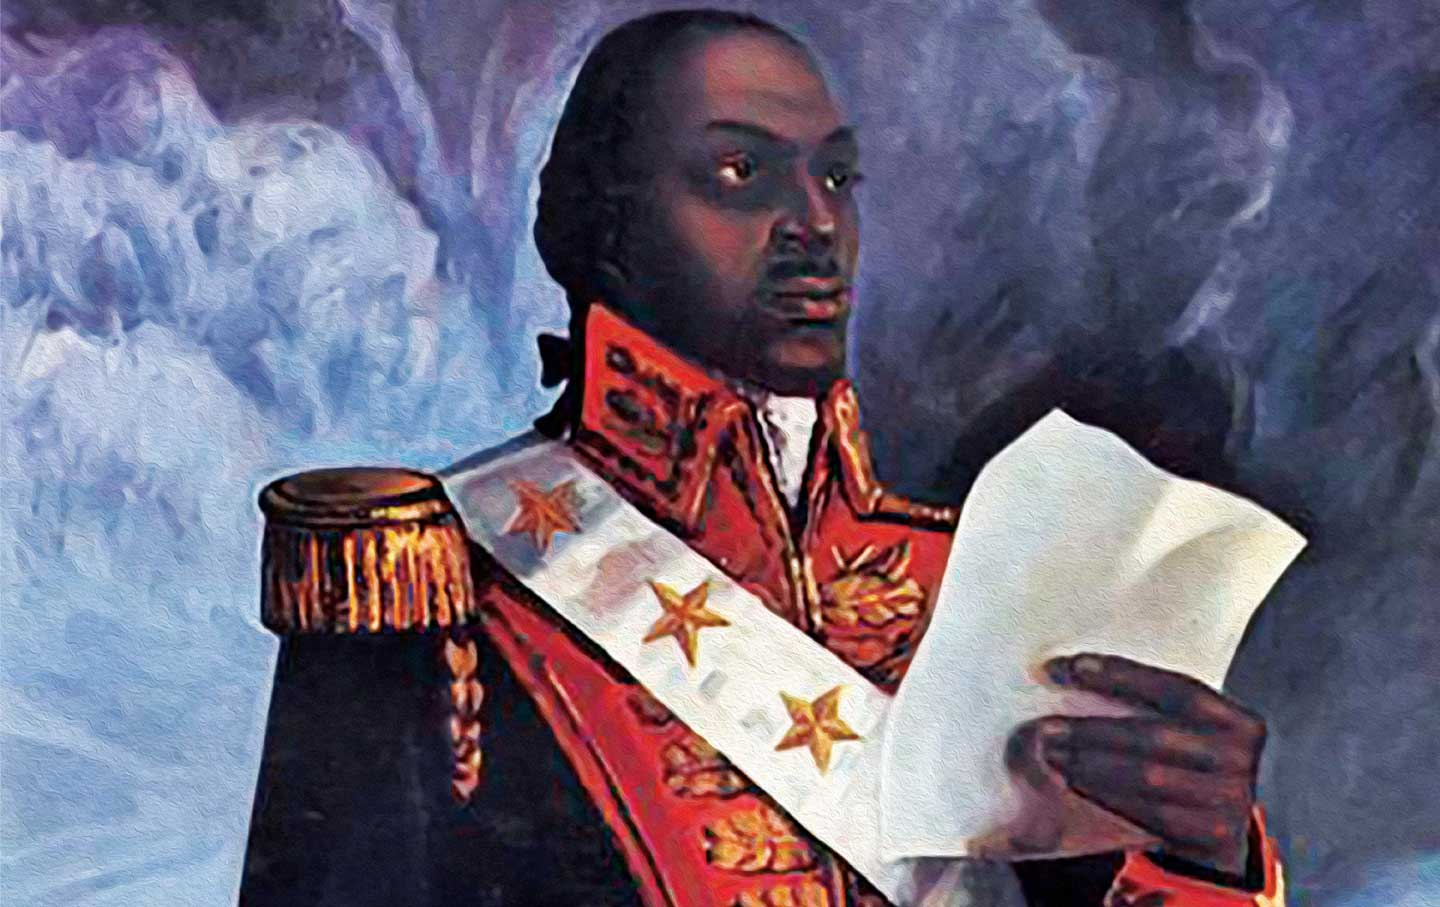 Toussaint Louverture helped successfully lead the  only slave uprising (in 1791) that created the first independent post-colonial state which was both free from slavery.